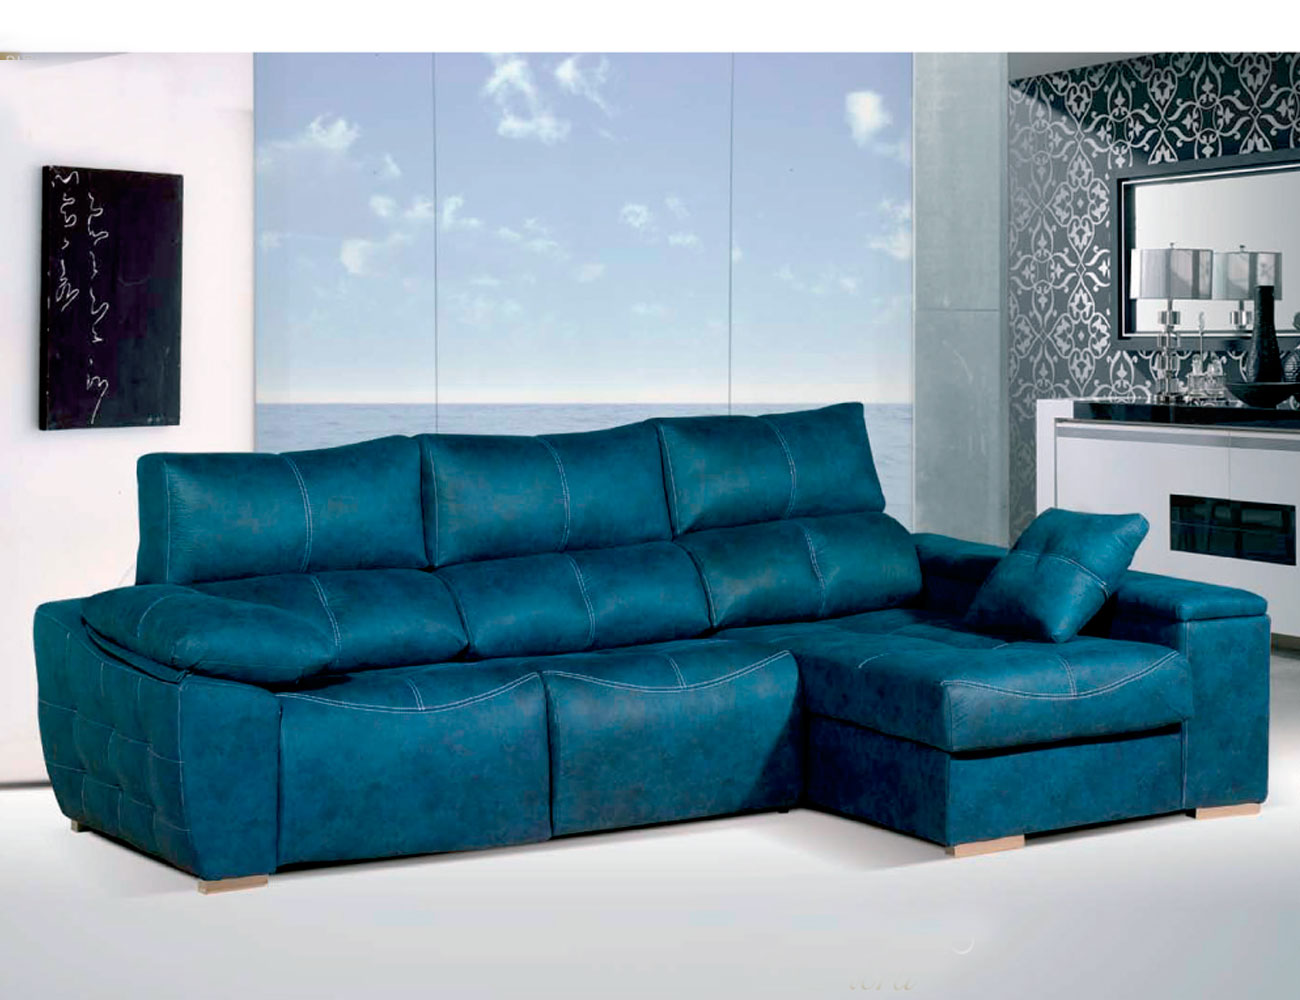 Sofa chaiselongue relax 2 motores anti manchas turquesa14